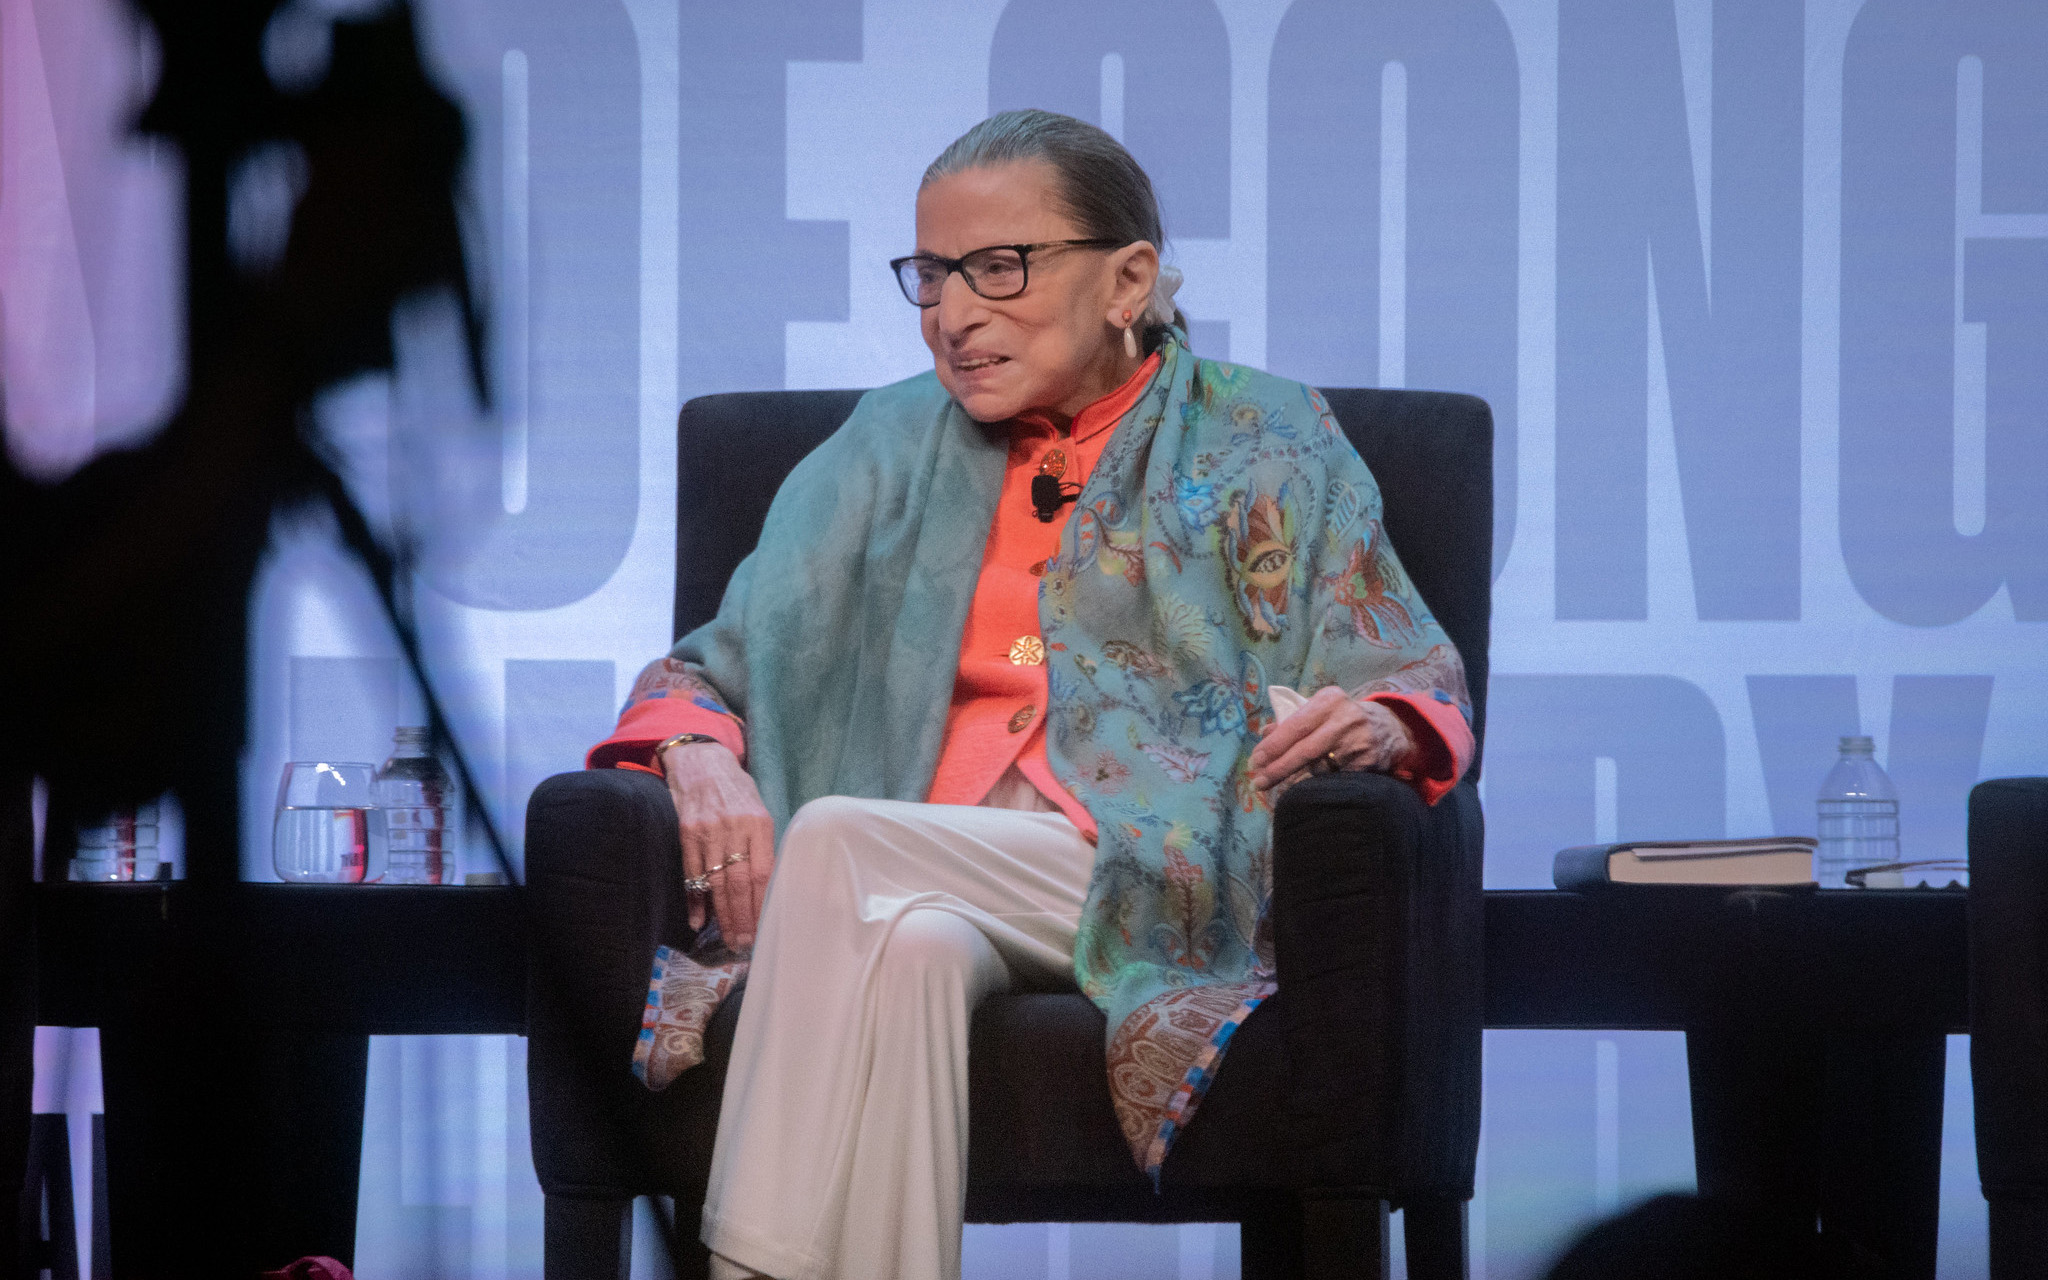 Ruth Bader Ginsburg, an old white woman with brown hair, wears glasses and a loose shawl and sits on stage while smiling.